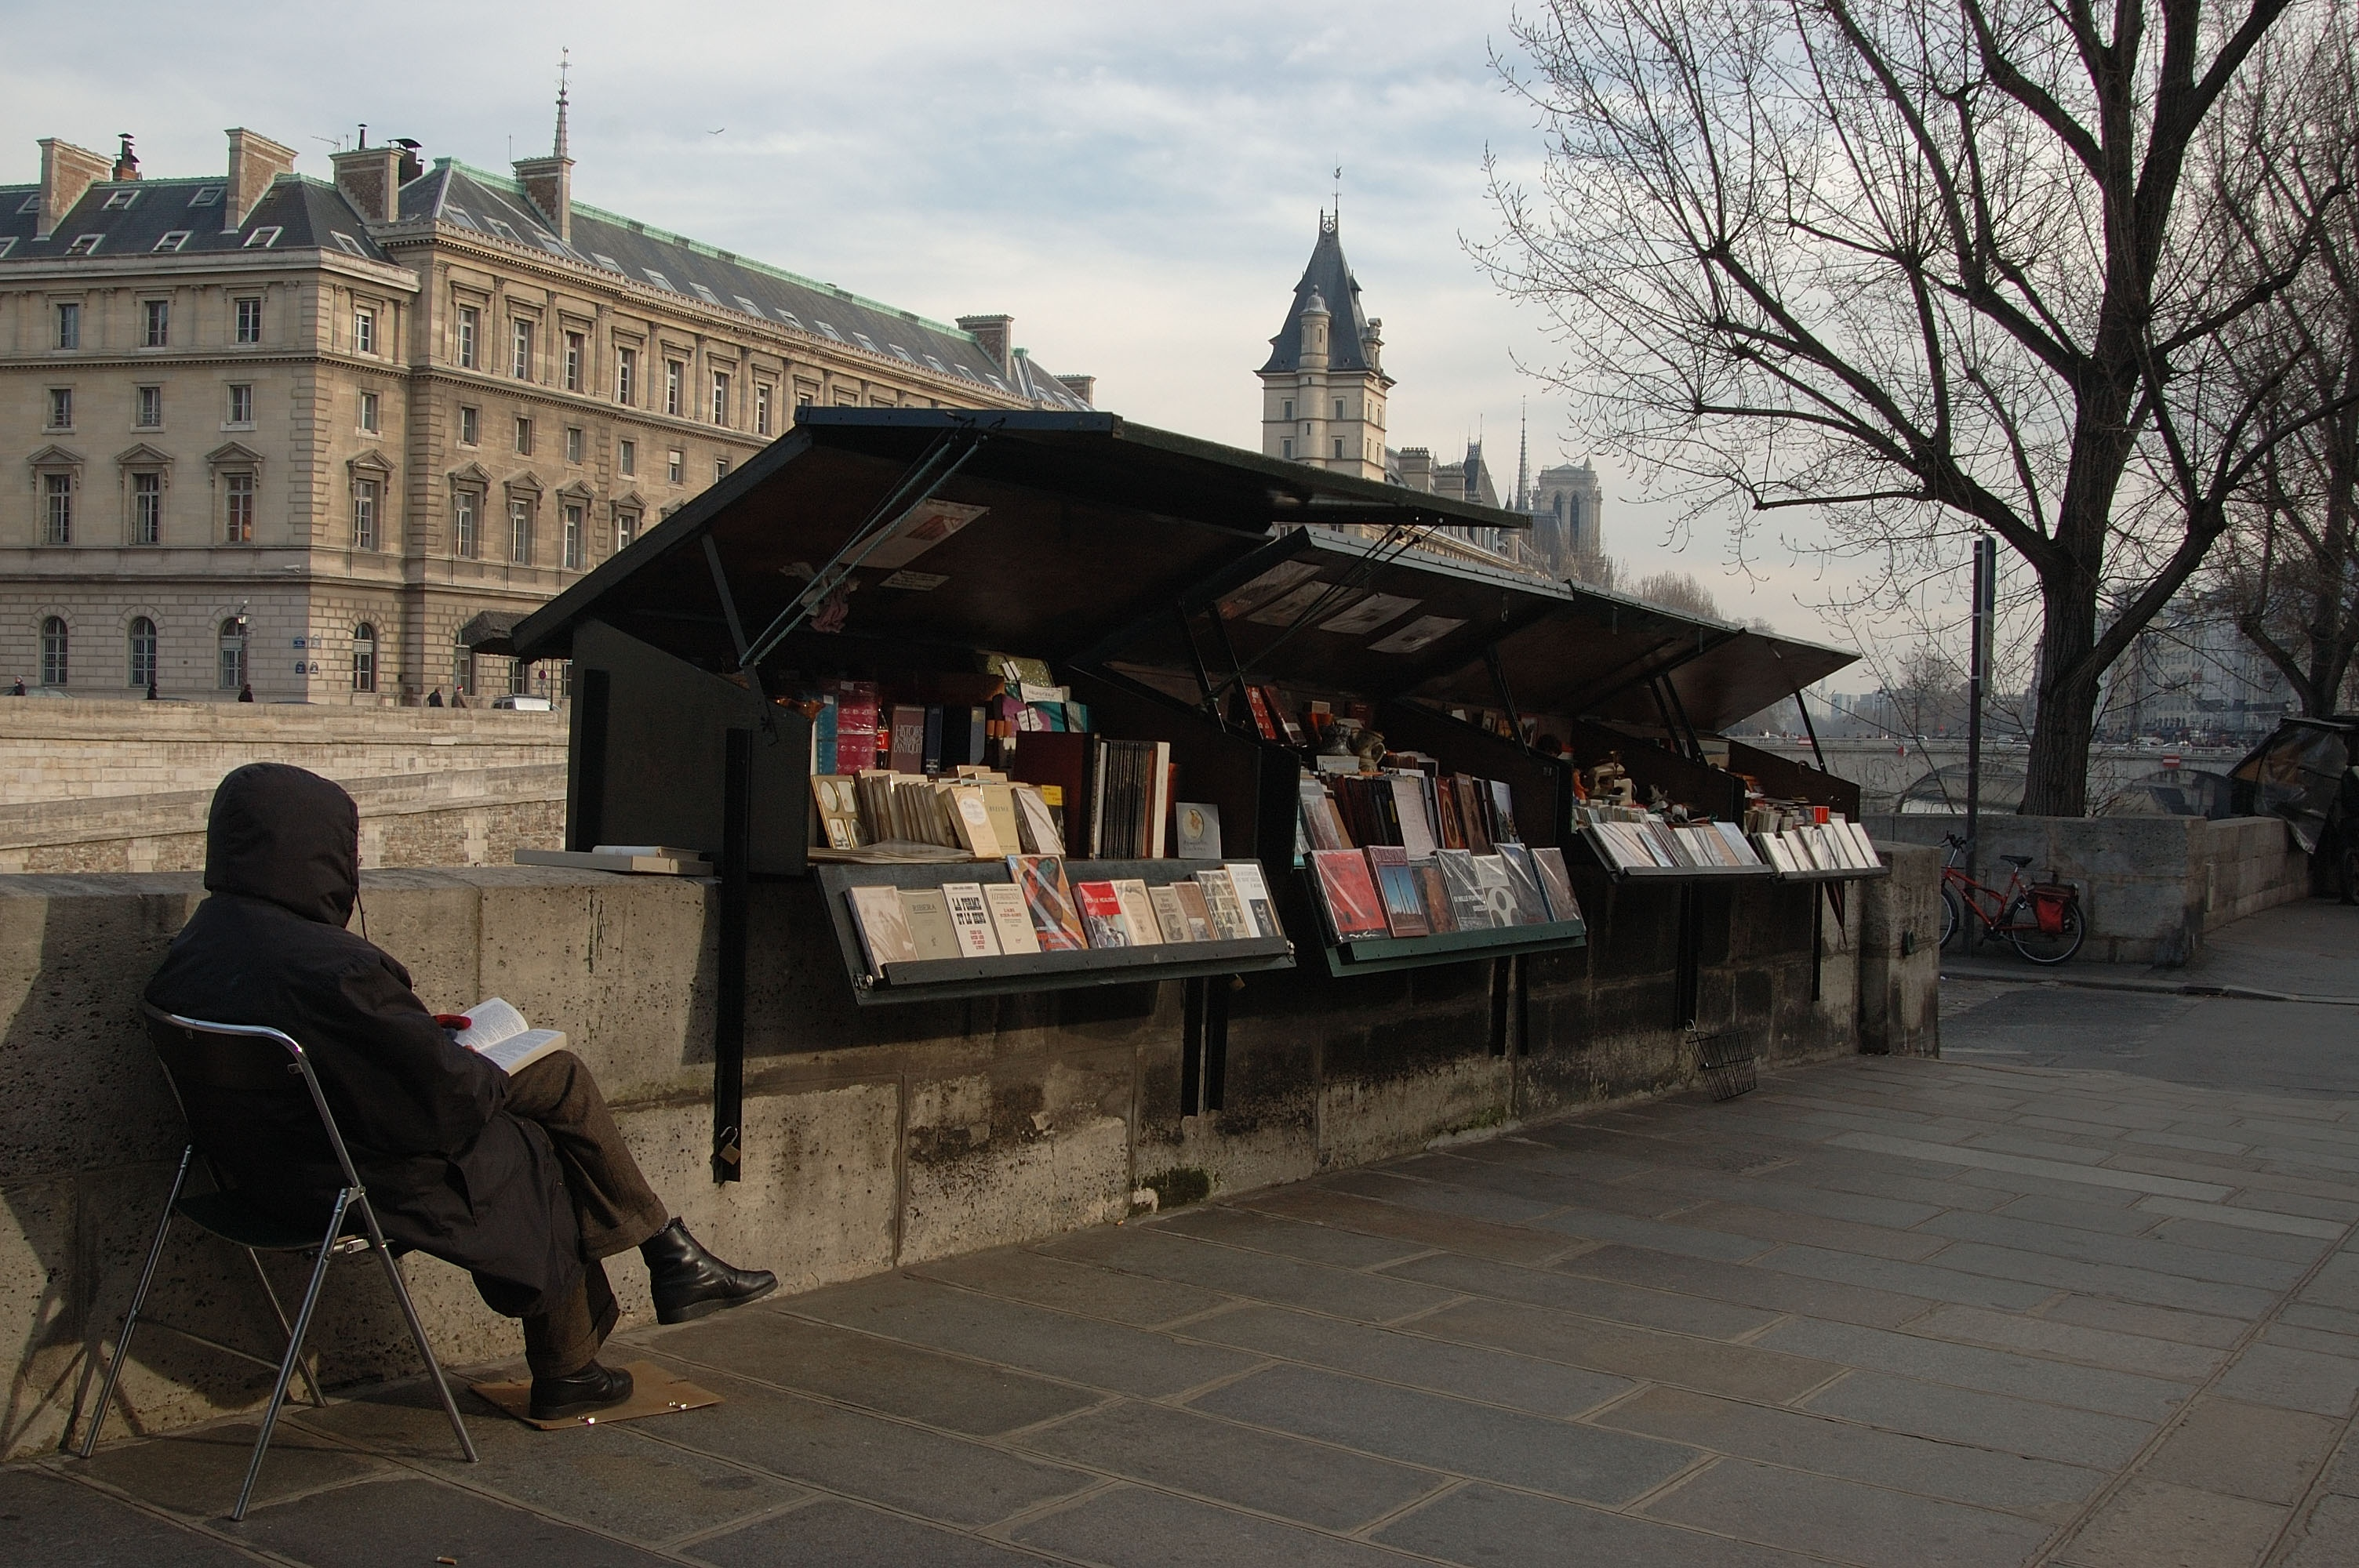 Booksellers on the banks of the Seine opposite the Ile de la Cite in Paris, France in February, 2006.